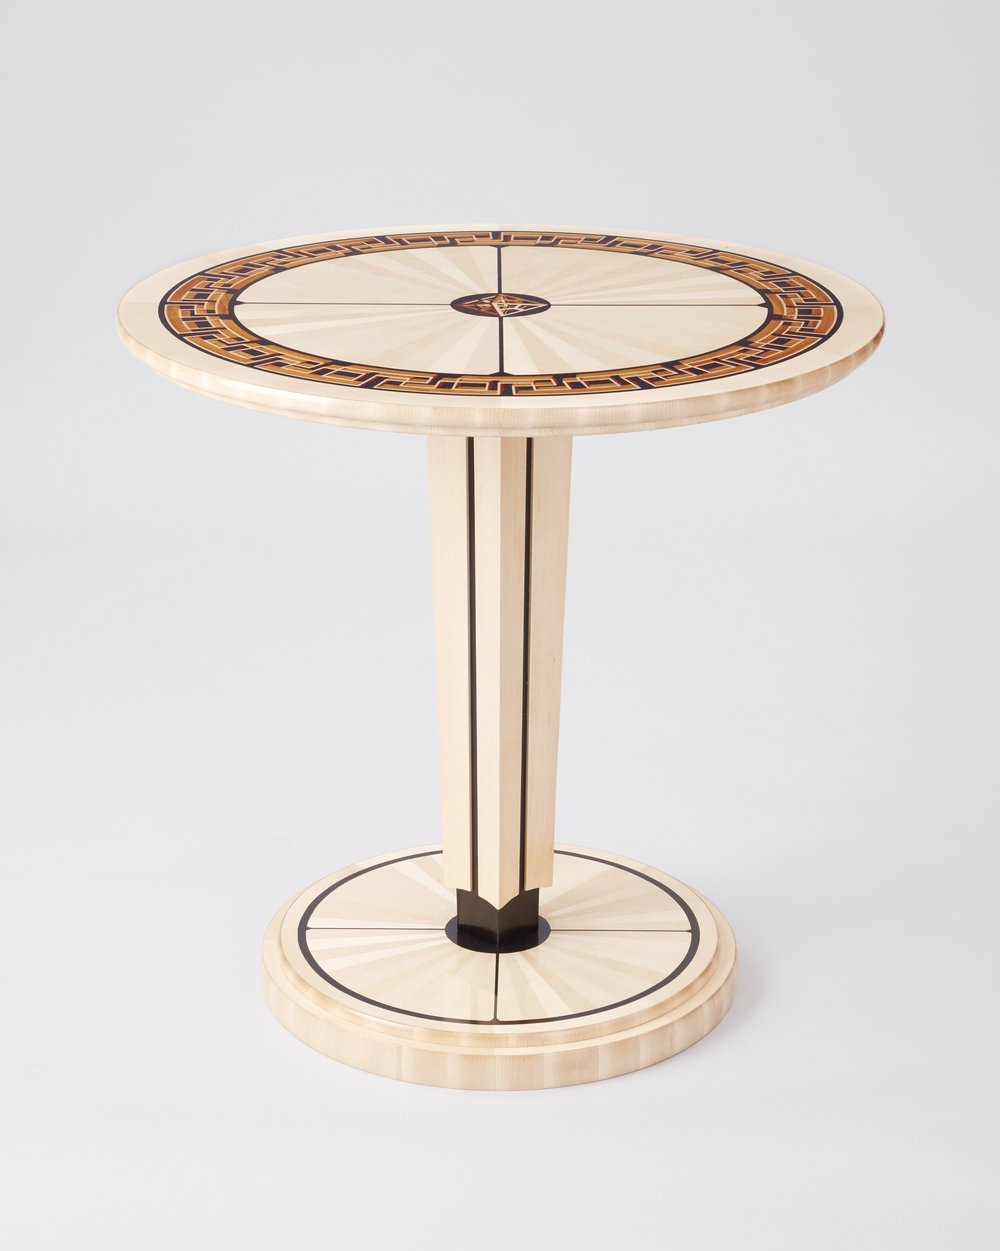 """Labyrinth Table"" 1st place winner 2017 Veneer Tech Craftsman Challenge furniture category"